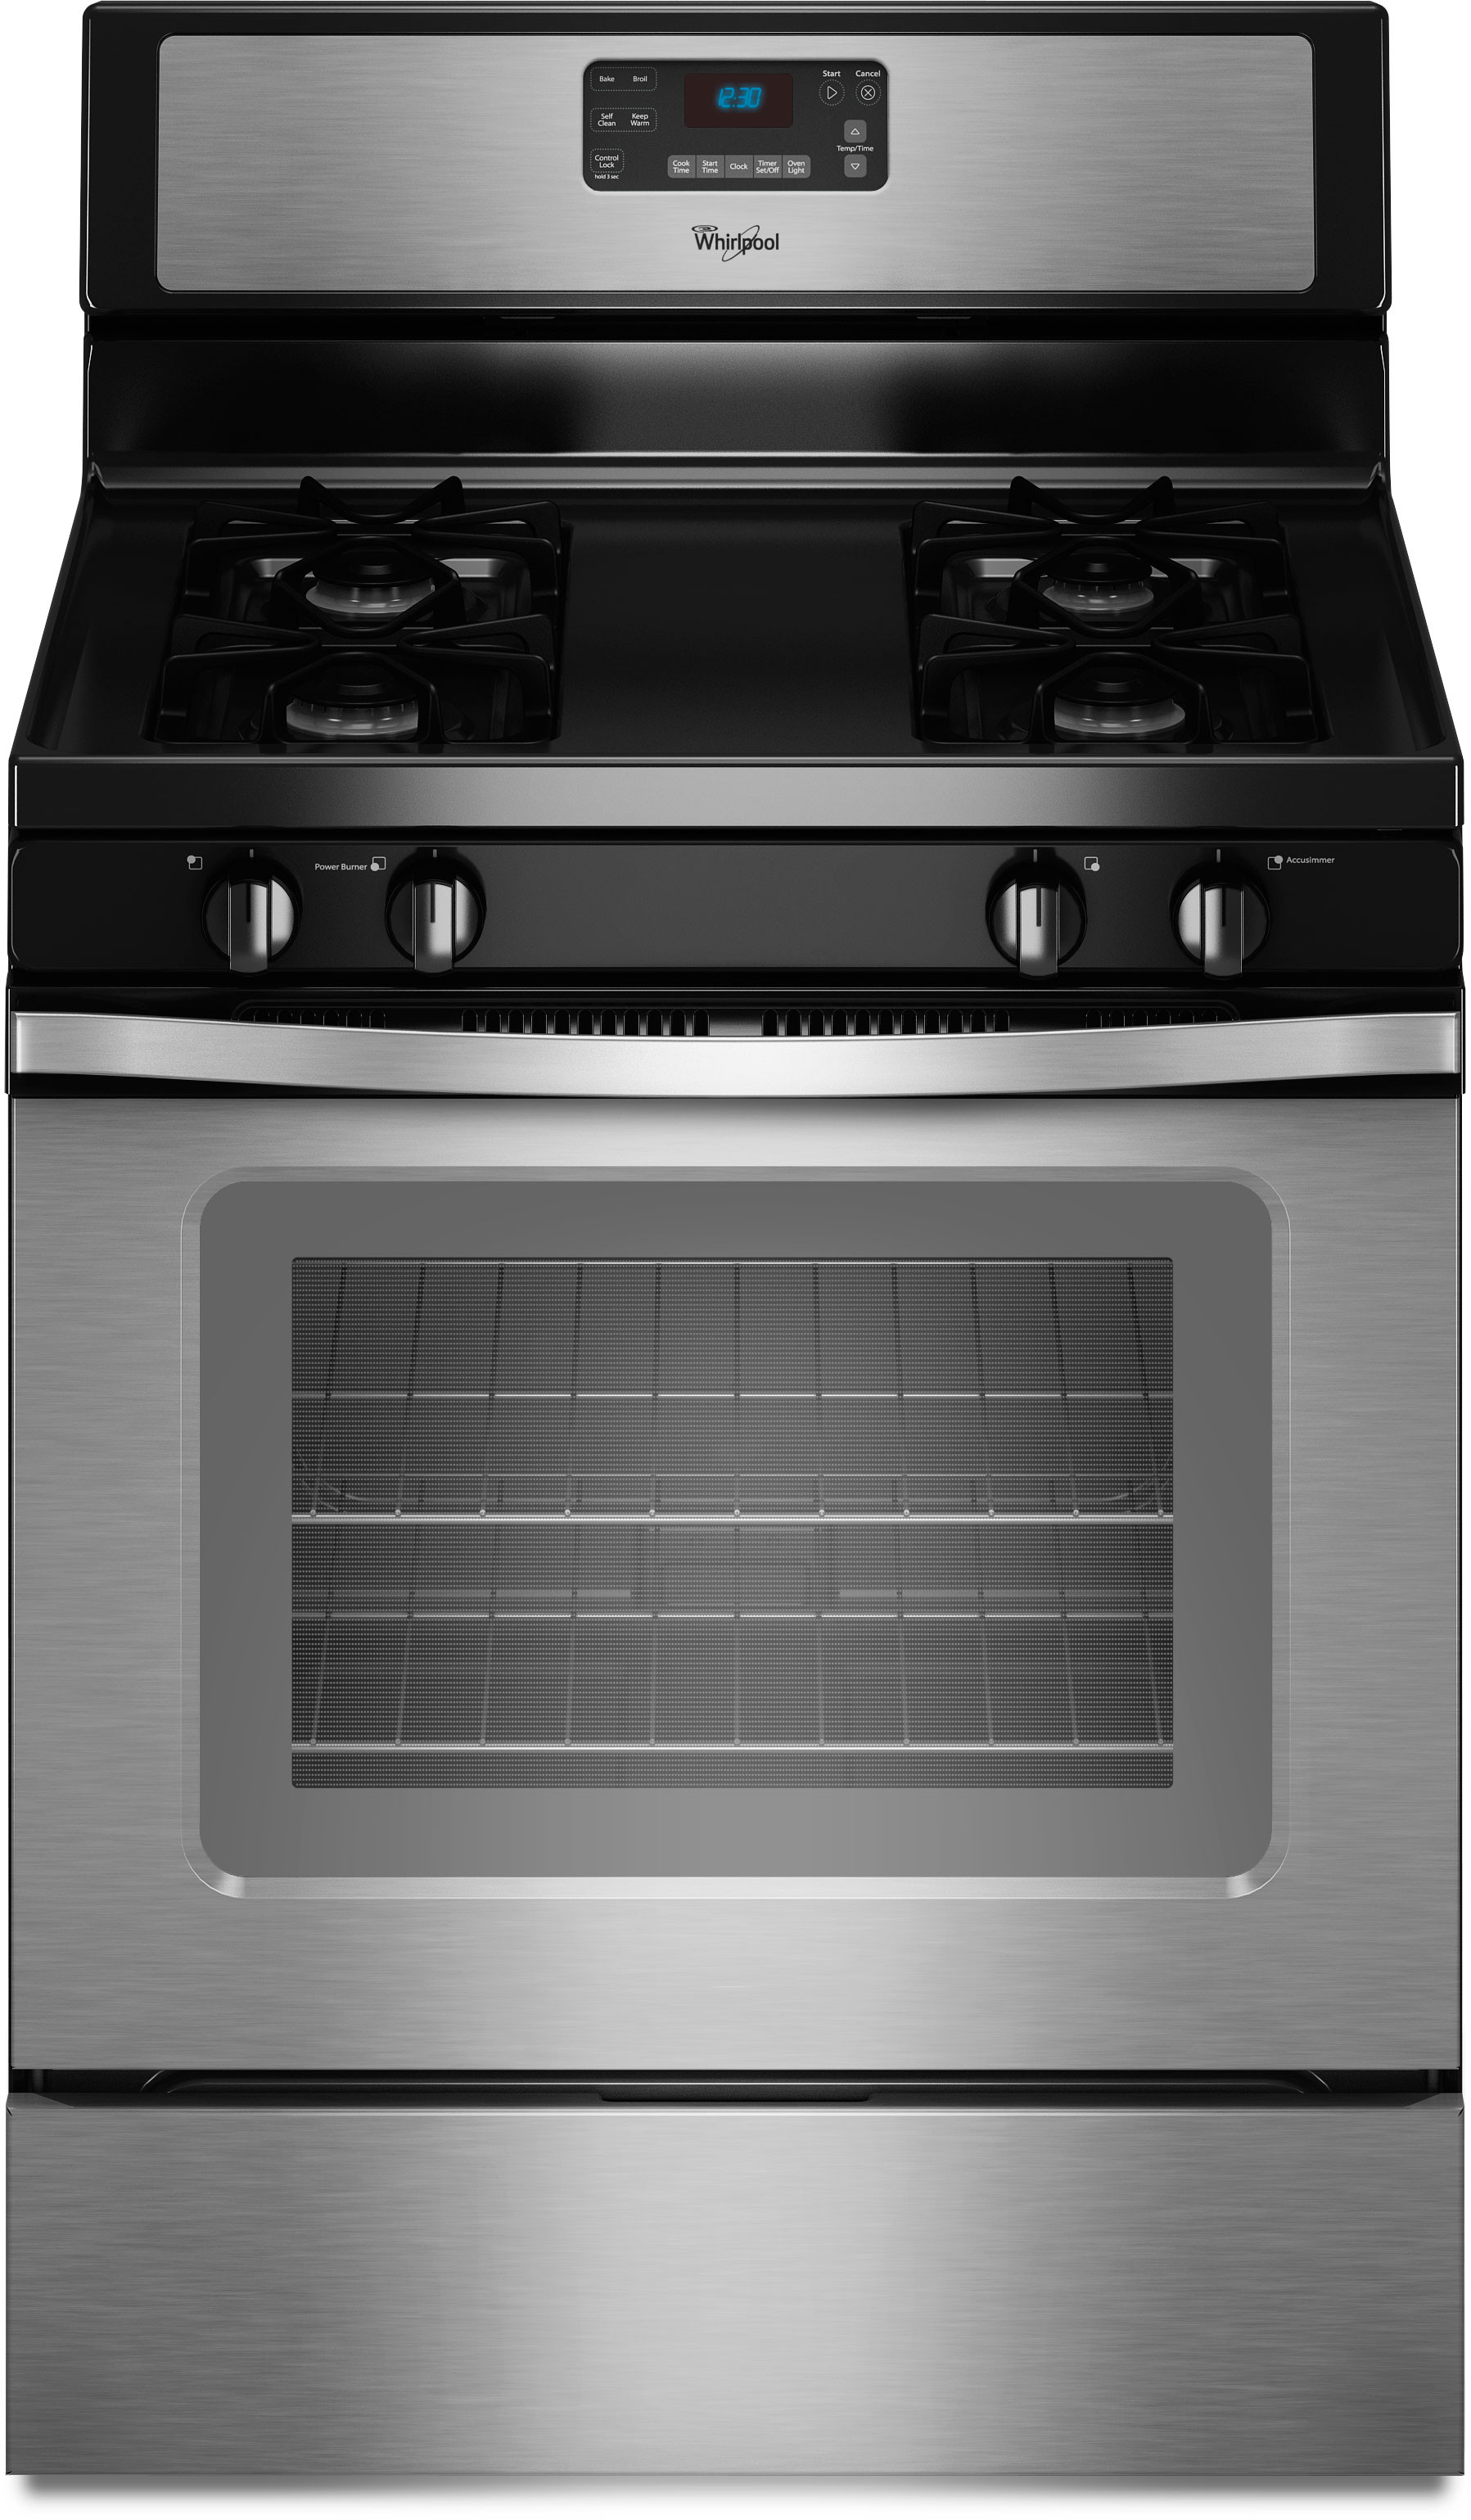 Whirlpool Wfg510s0as 30 Inch Freestanding Gas Range With 4